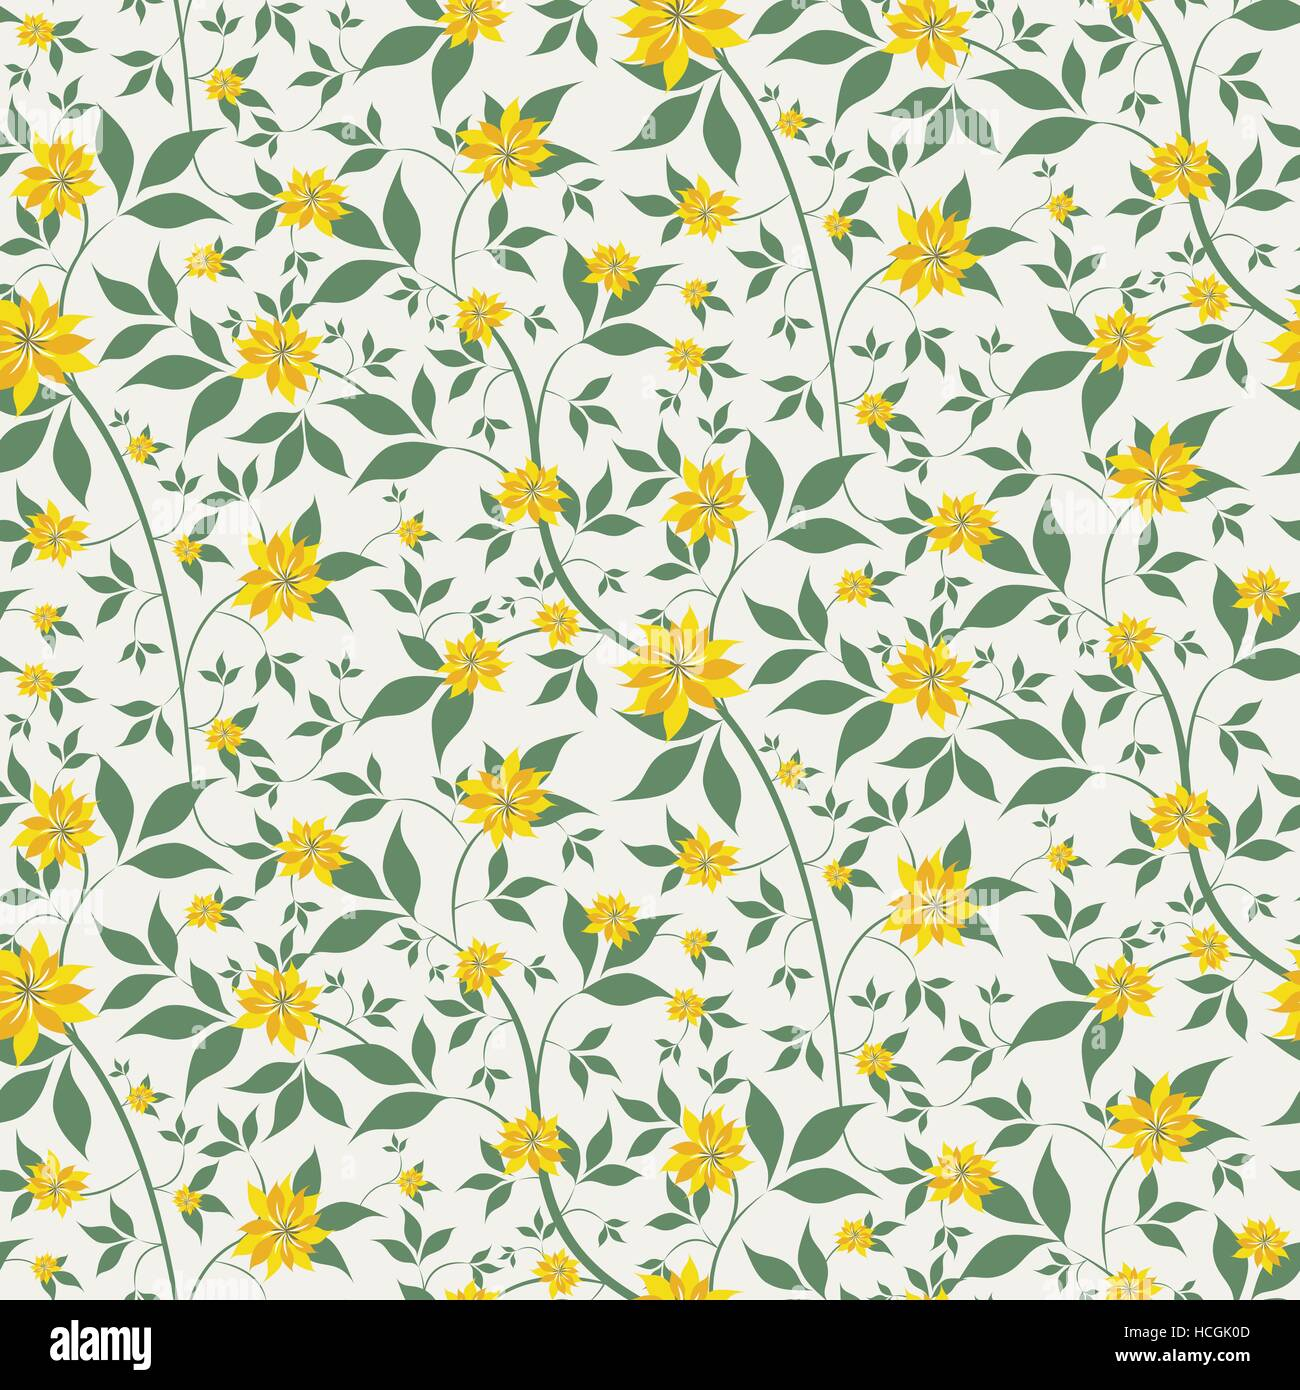 Seamless Floral Background With Small Yellow Flowers Stock Vector